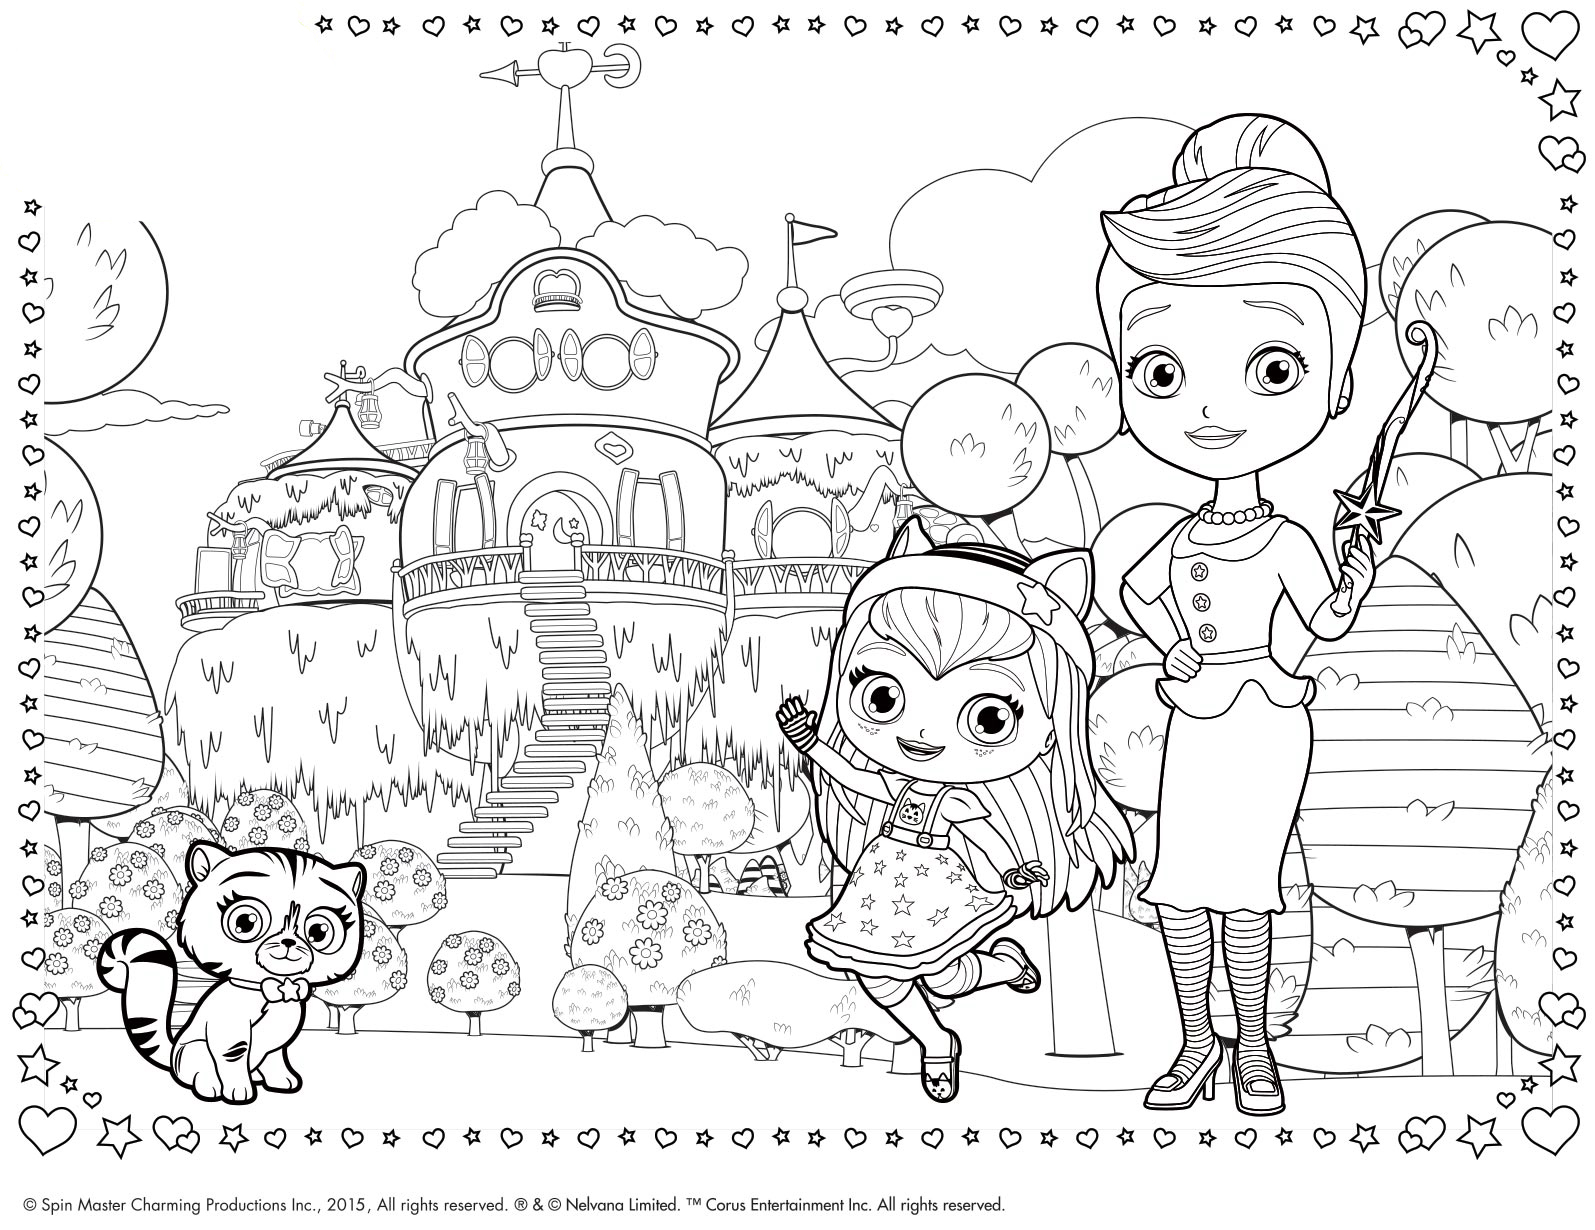 little charmers coloring pages printable - photo#7